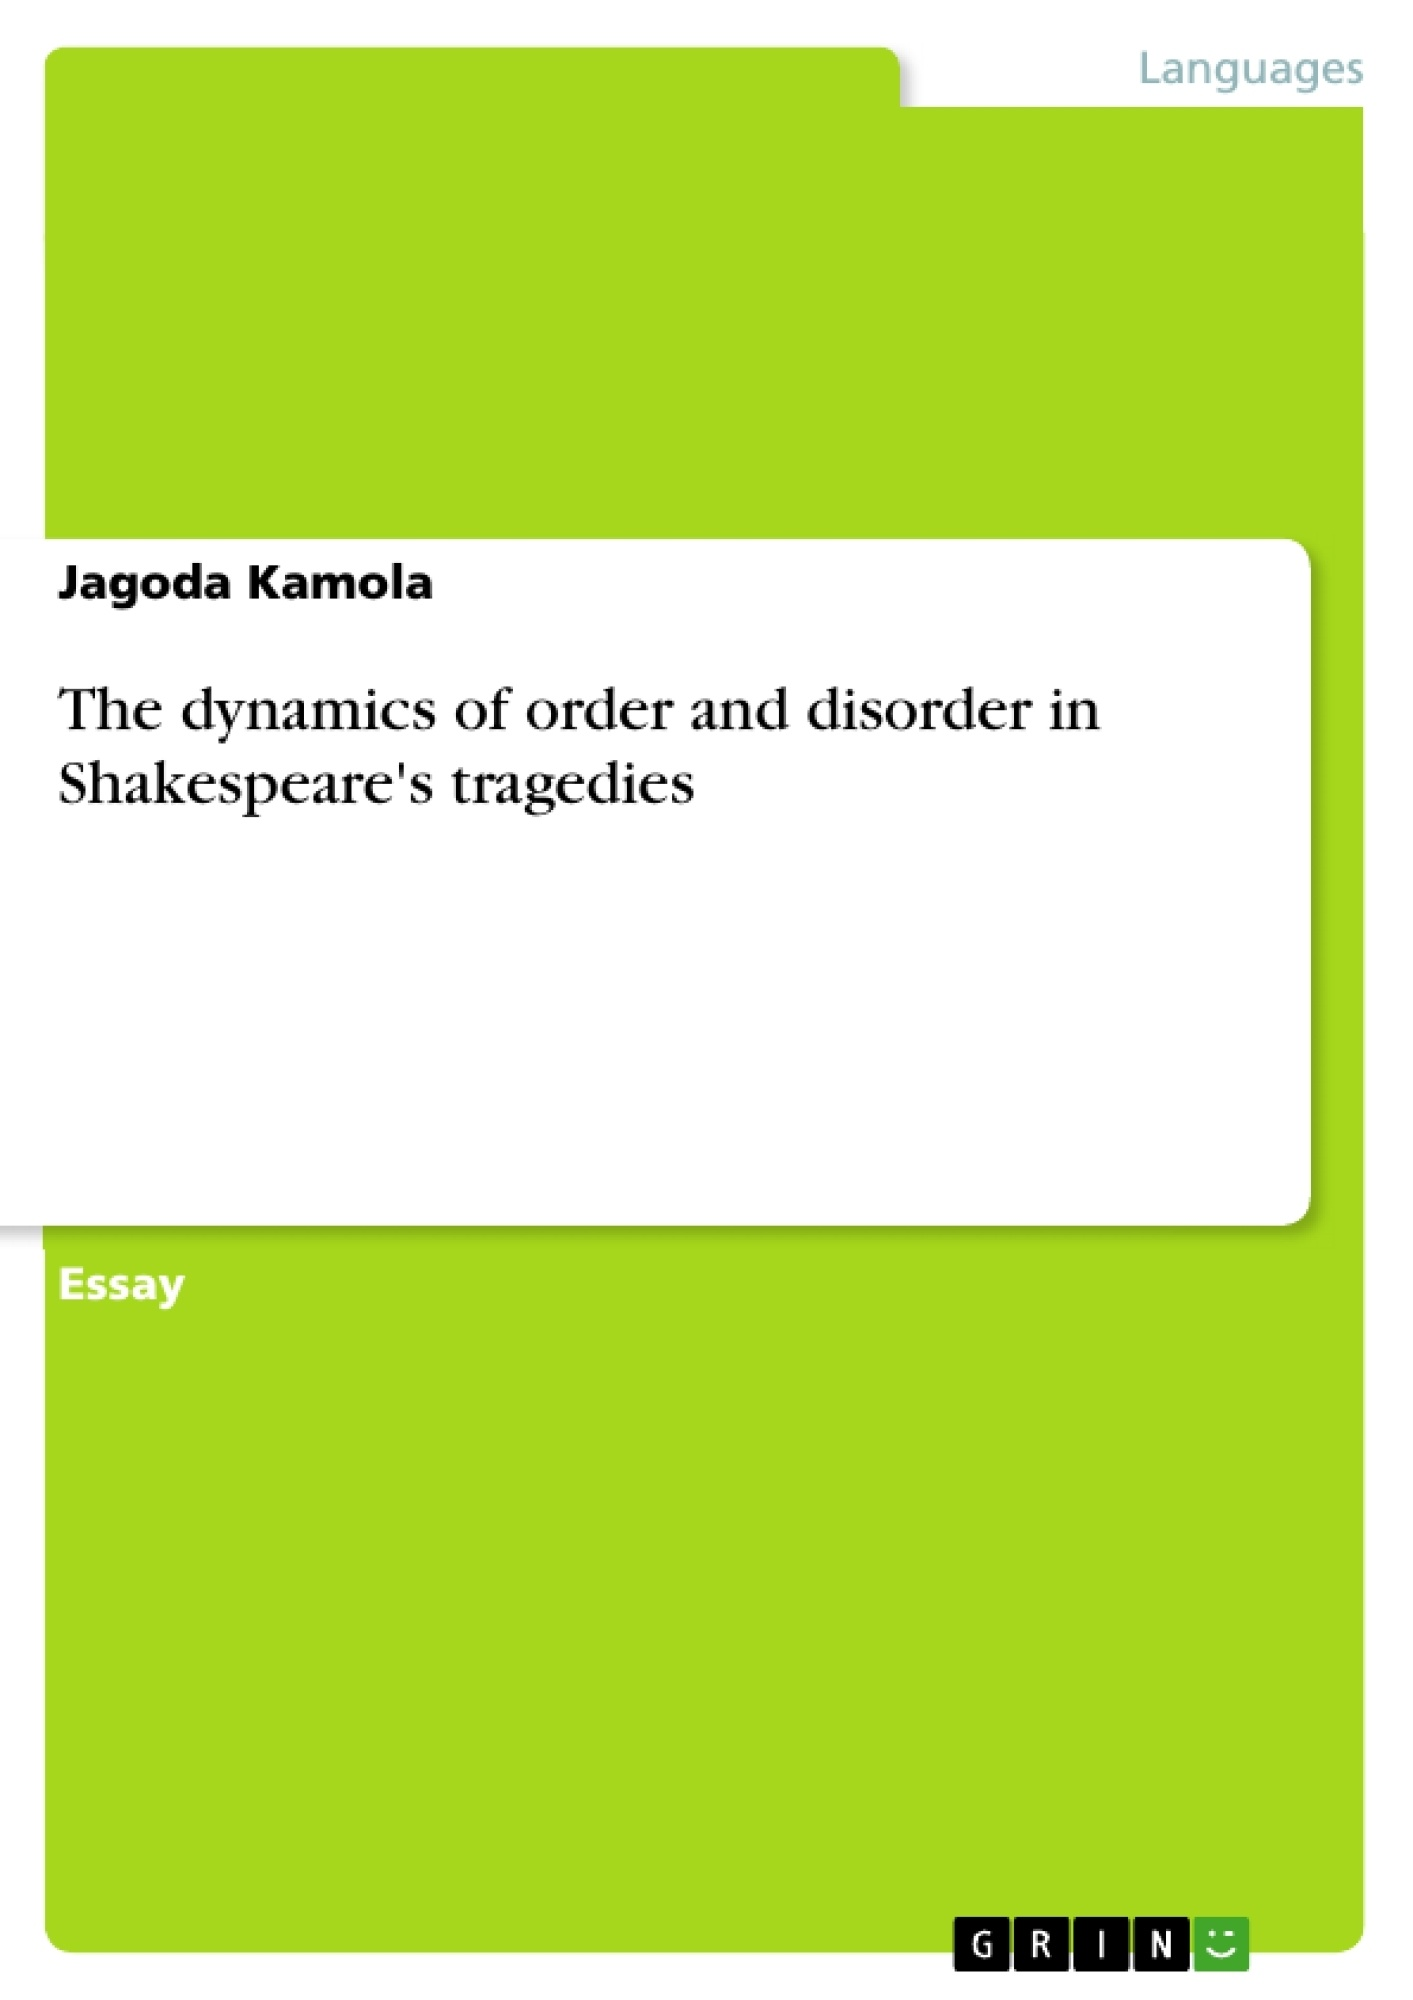 order and disorder in king lear Chaos and order in king lear essayshow might different productions dramatise the struggle between chaos and order in king lear by lana elise benson (written in 50.